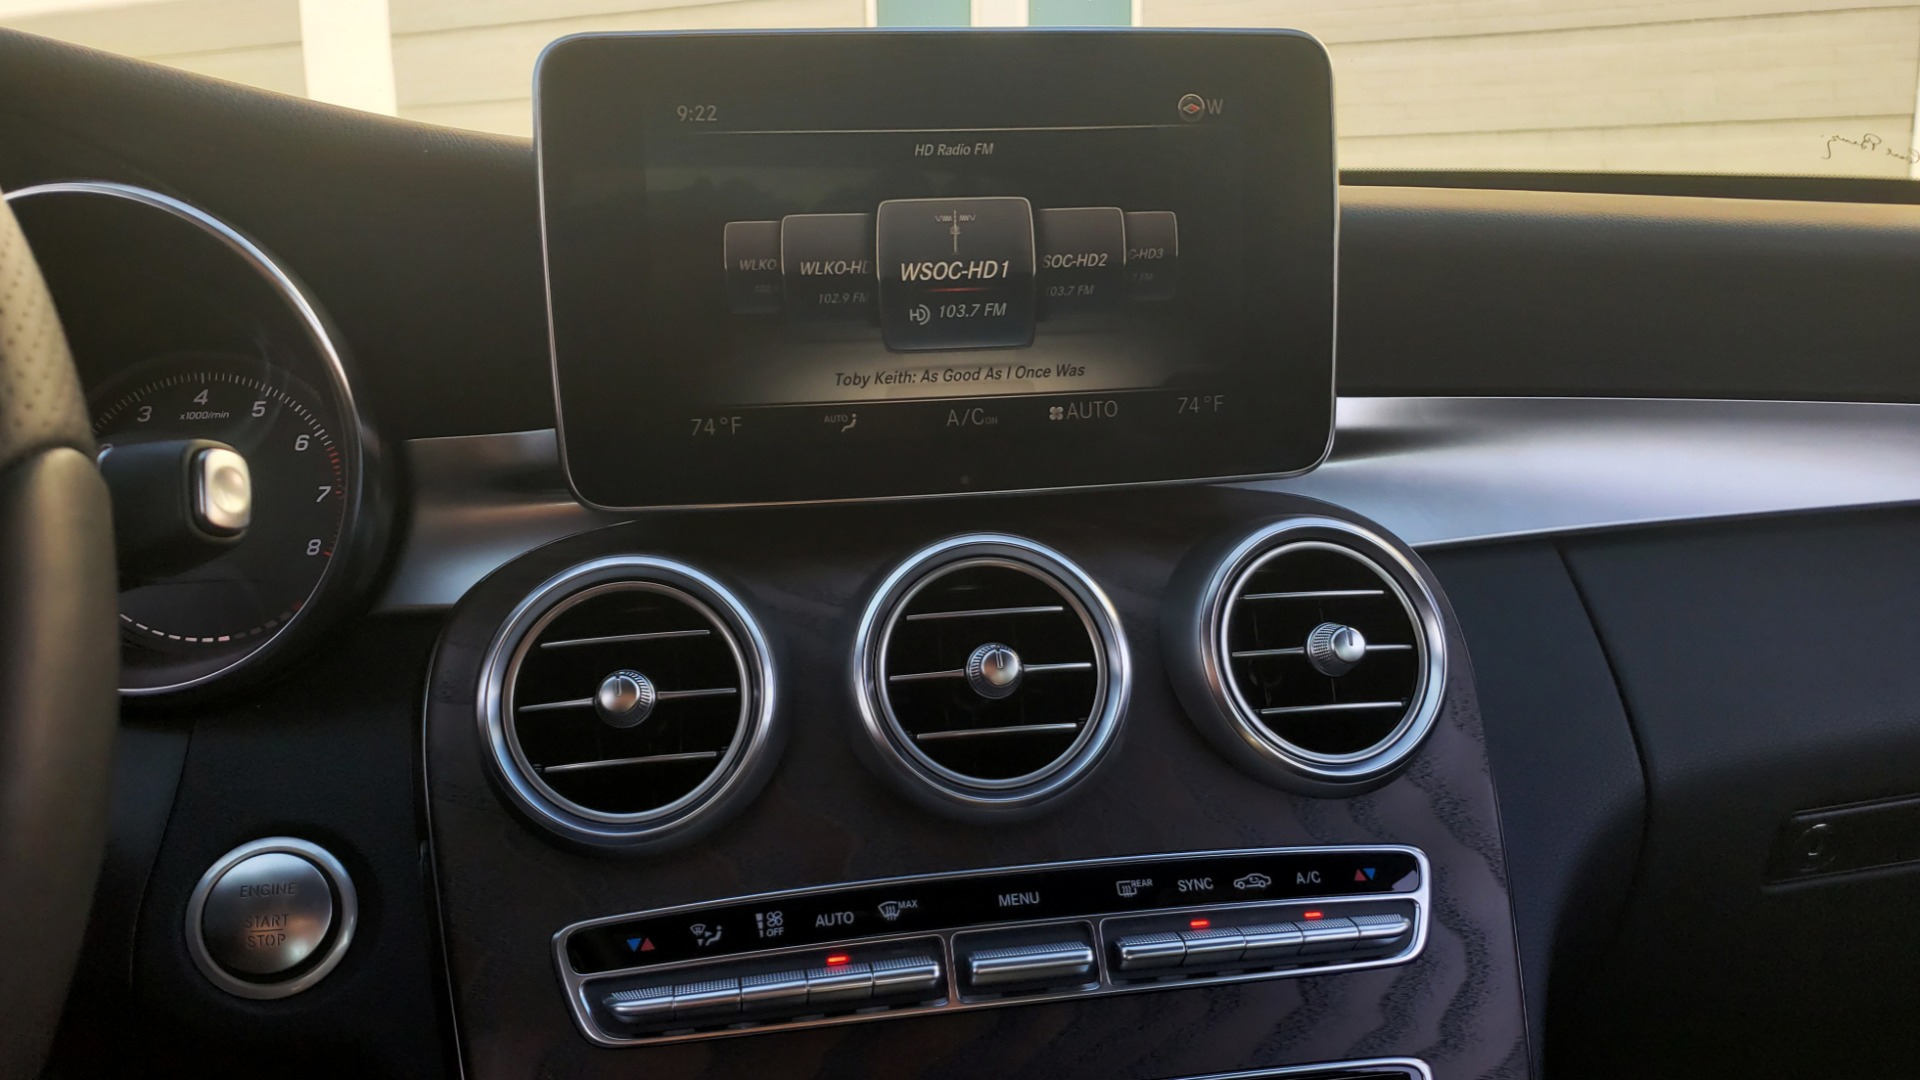 Used 2018 Mercedes-Benz C-Class C 300 PREMIUM / NAV / PANO-ROOF / AMG LINE / MULTIMEDIA for sale $28,235 at Formula Imports in Charlotte NC 28227 43